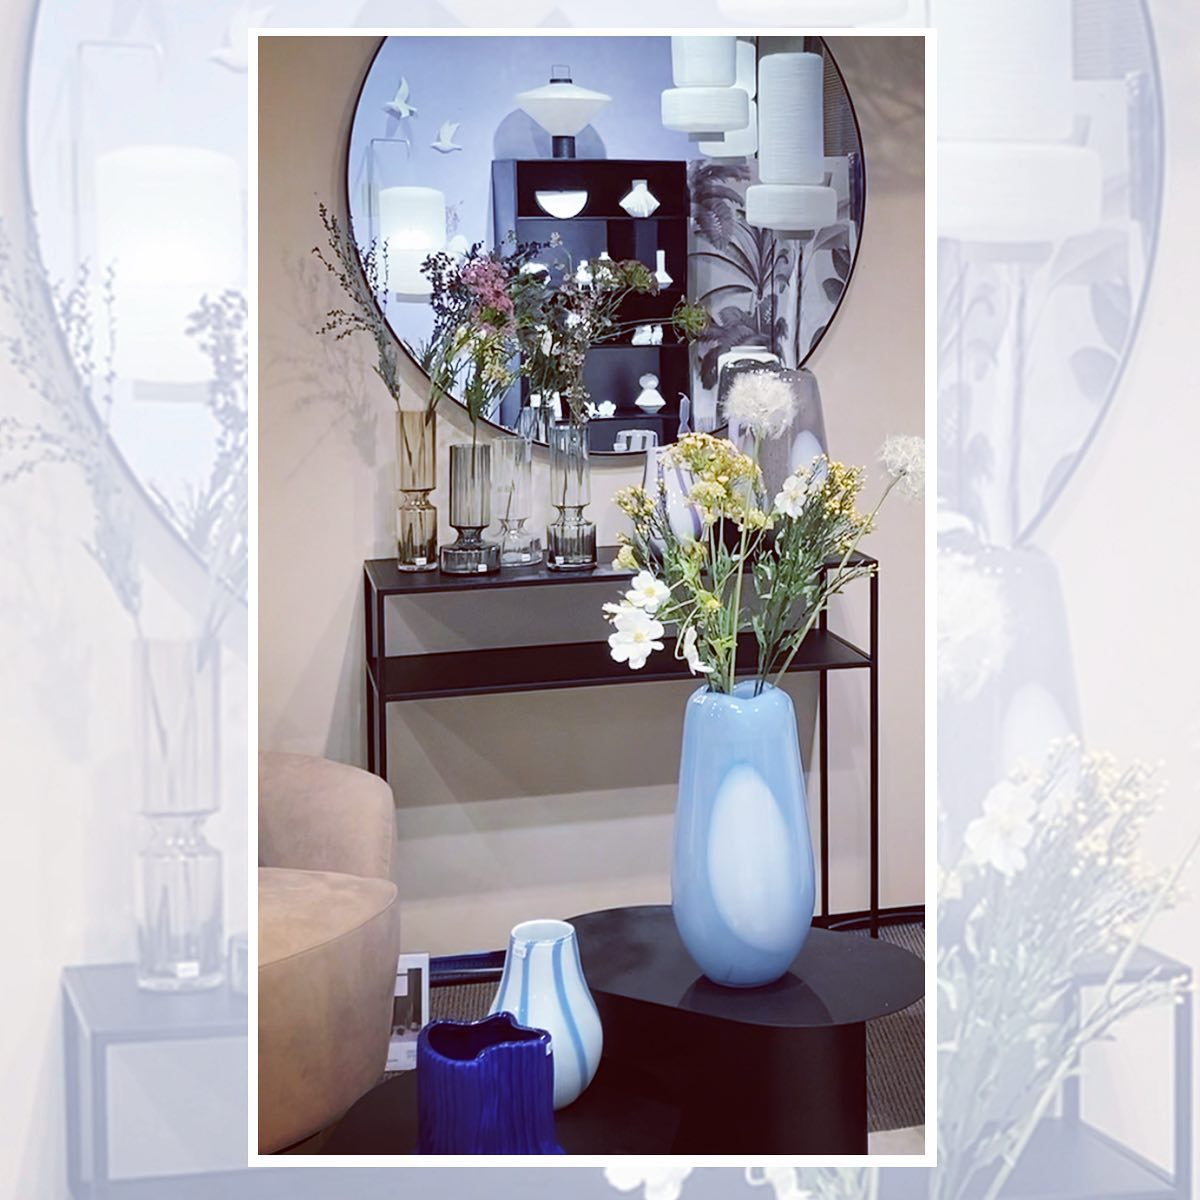 Missing this place!  Our showroom this season has so much COLOUR and had made us feel we were in summer already. This photo is a glimpse of our Broste Copenhagen blue vases, hyacinth vases, our new studio coffee table and console and in the mirror reflection, rice paper lamps and our fine bone China collection. . . #showroom #colour #cantwaittogoback #vases #coffeetables #hyacinthvases #finebonechina #lamps #lighting